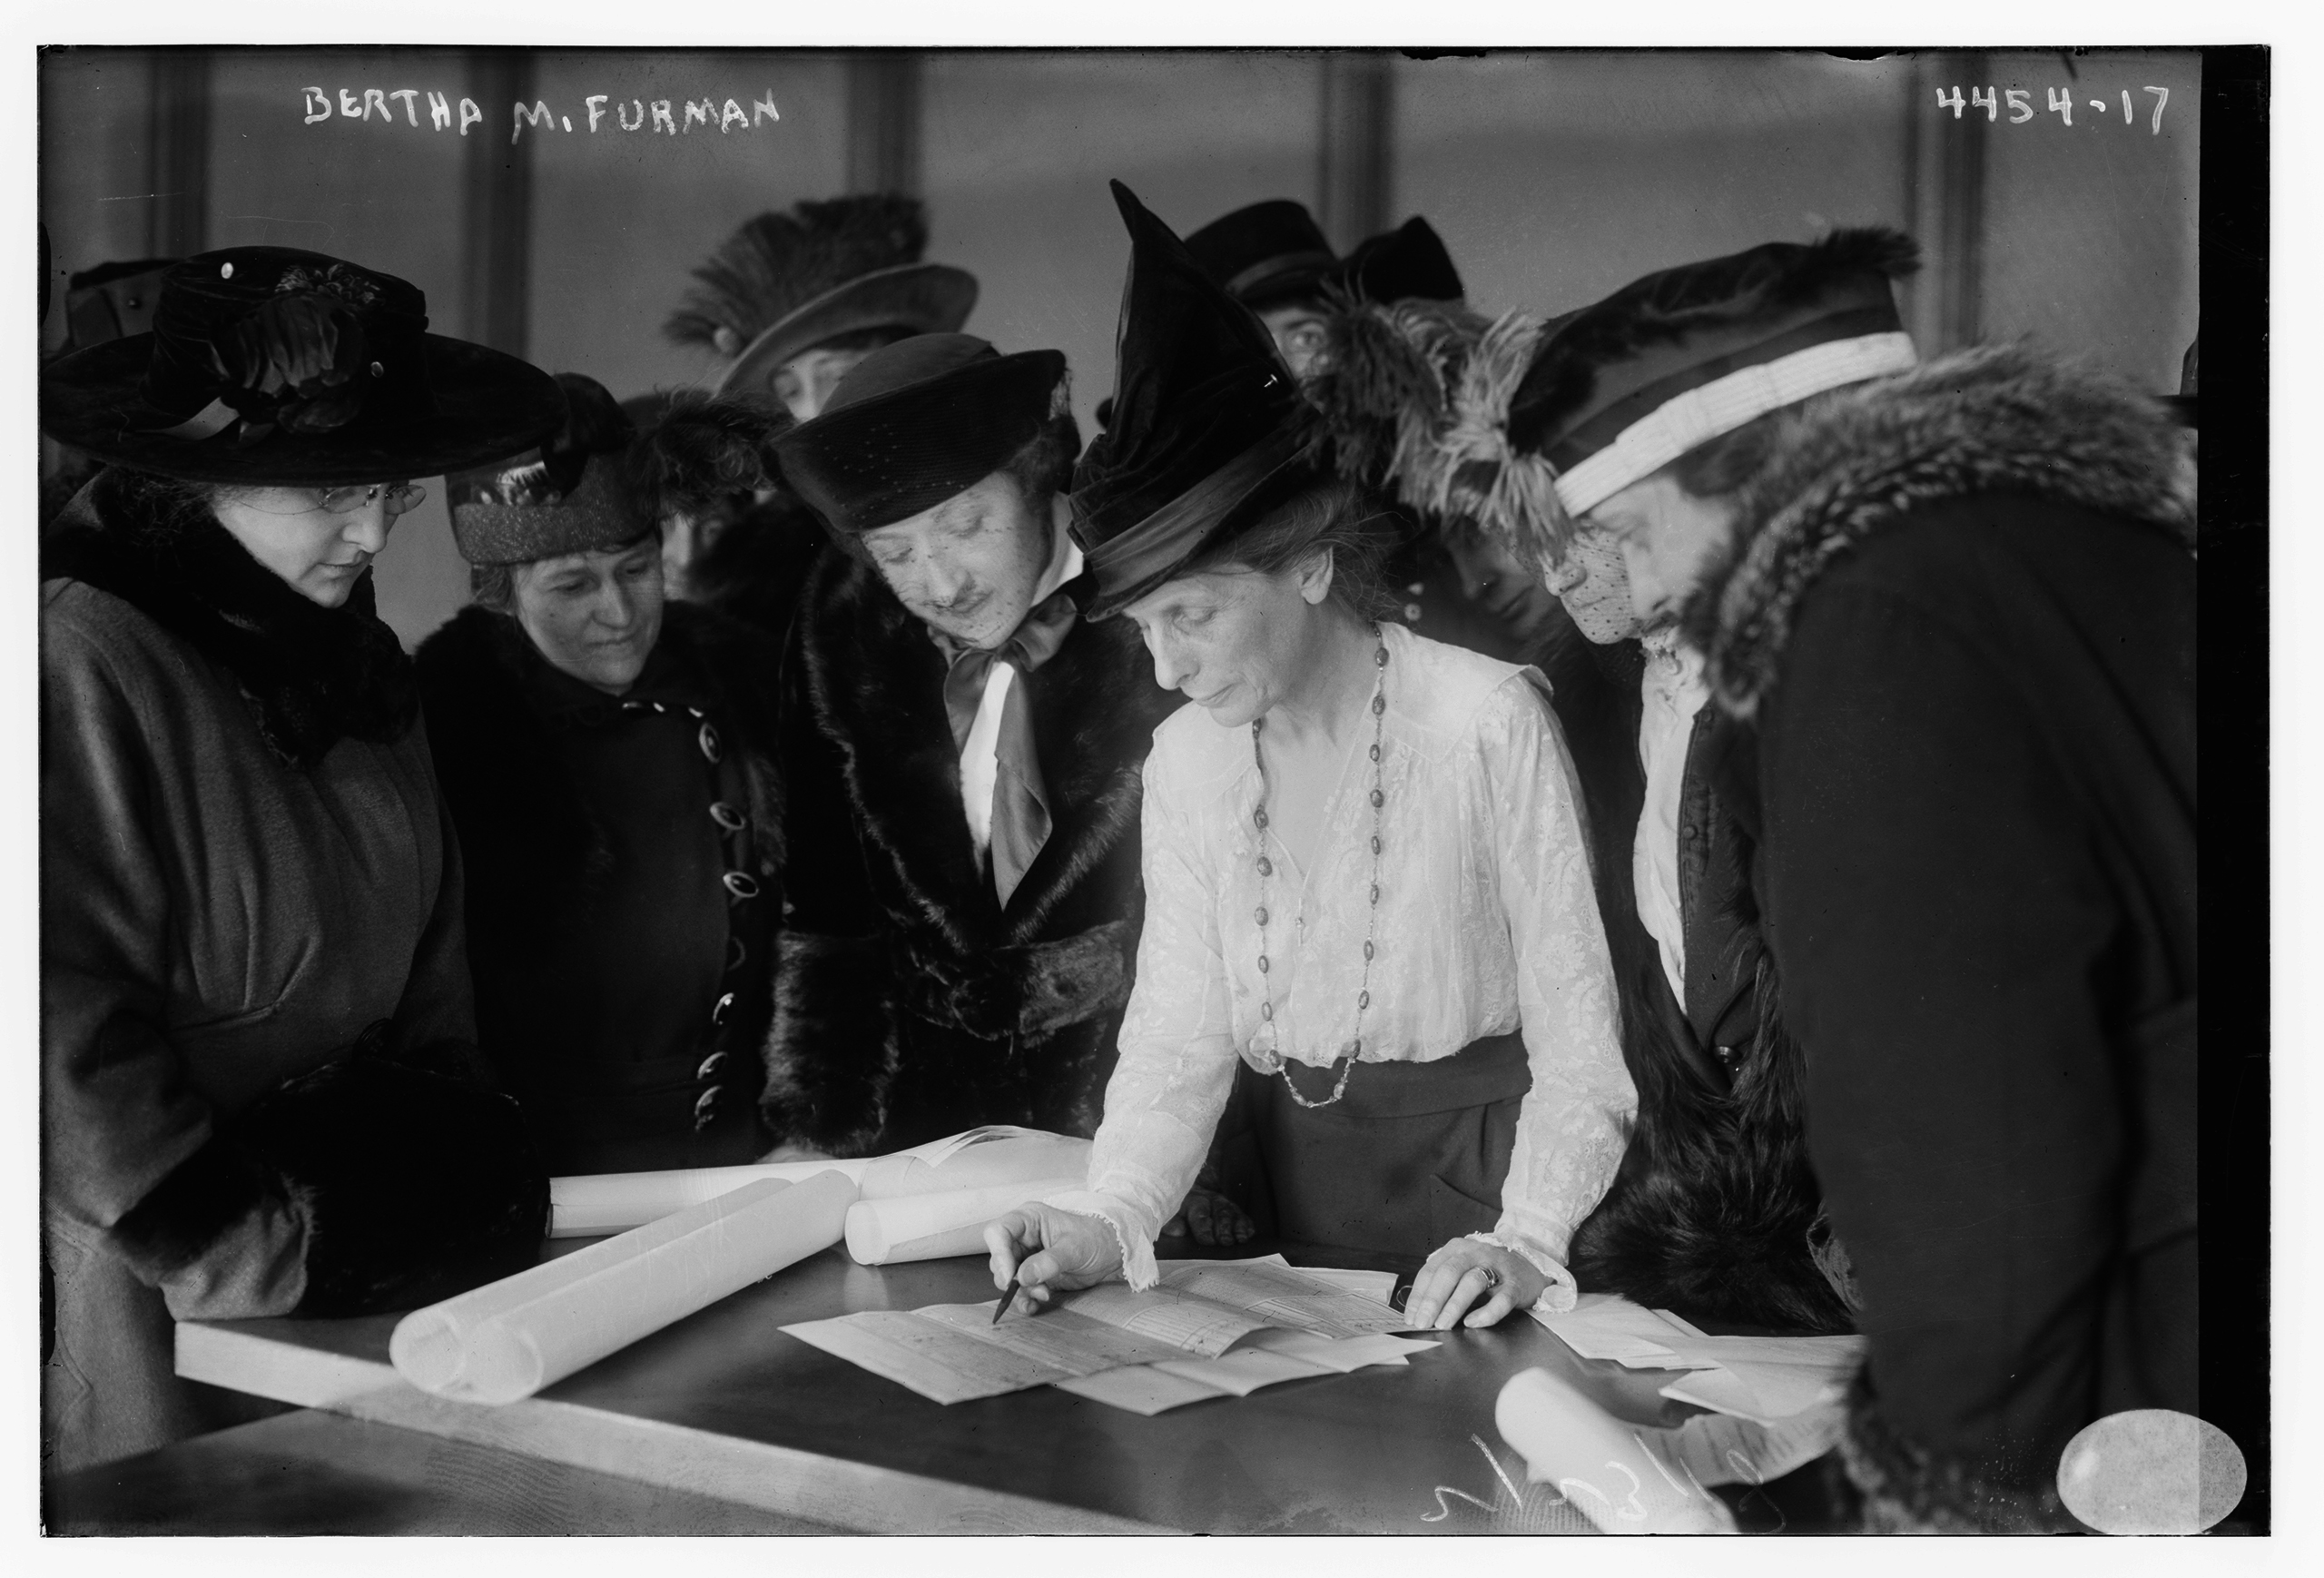 Suffragist Bertha M. Furman, who worked for the League of Women Voters, teaching women how to vote, circa 1930.